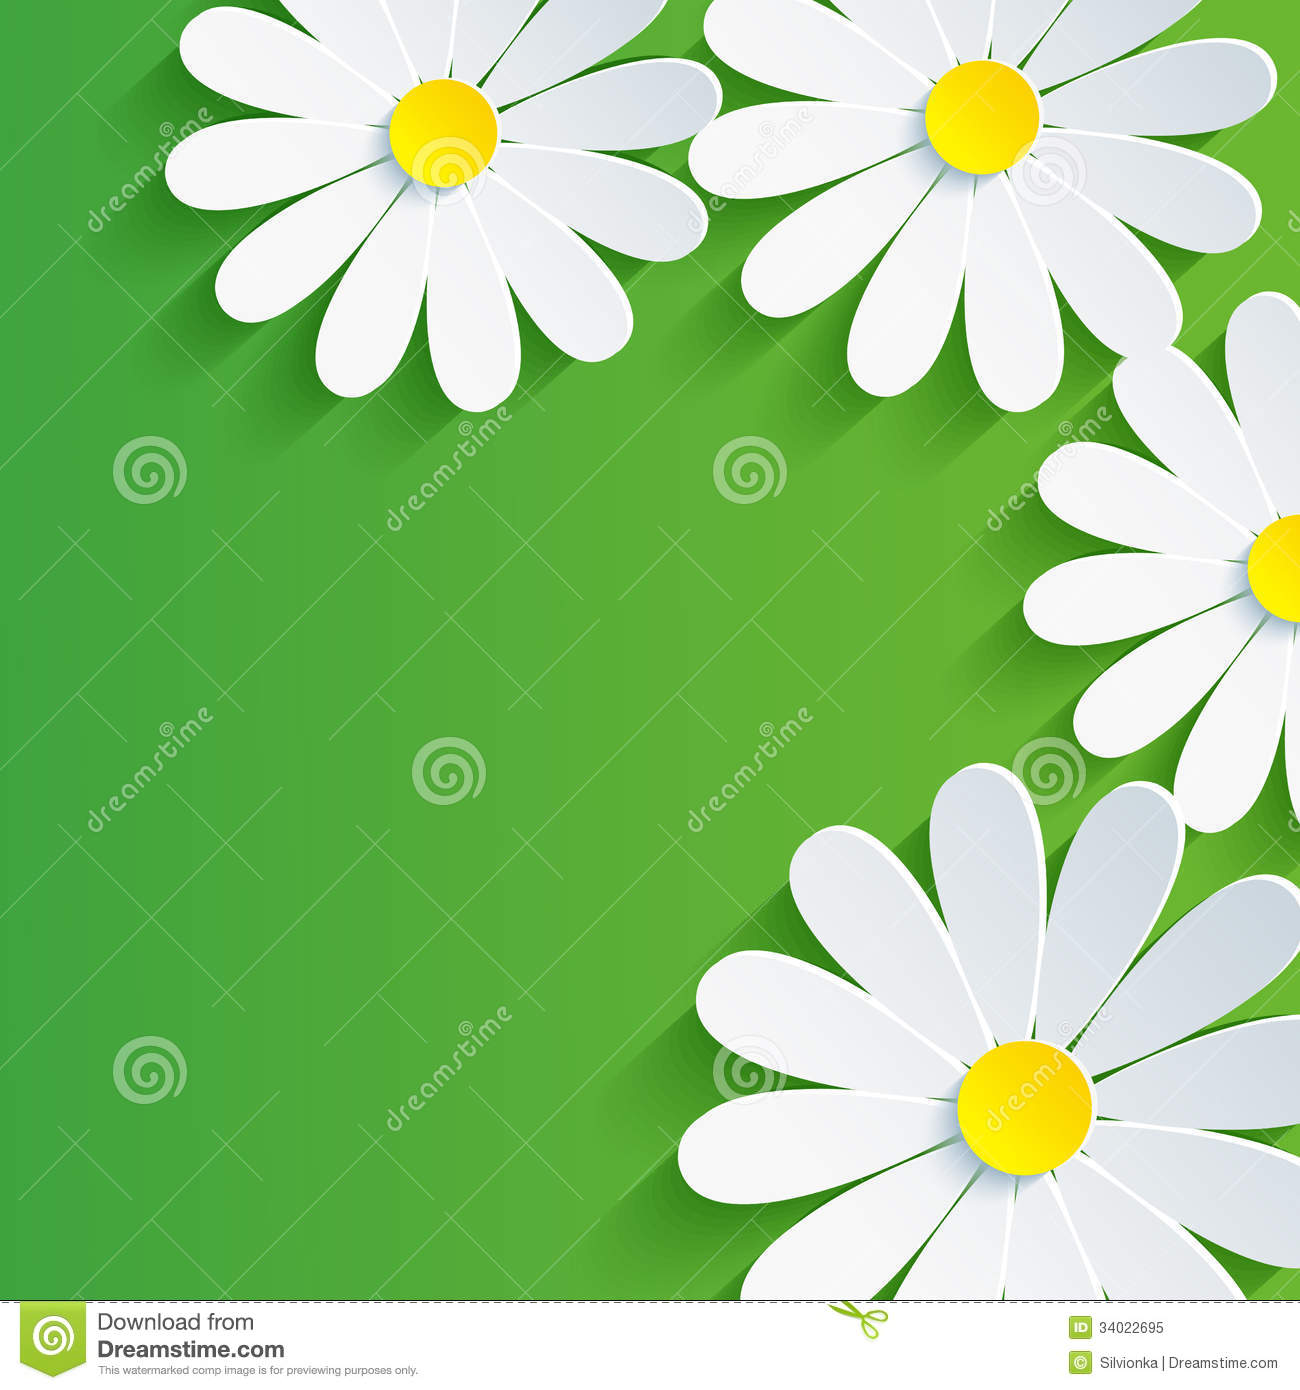 Spring Flower With Green Background Vector 02 Free Download: 3d Flower Chamomile, Spring Abstract Background Stock